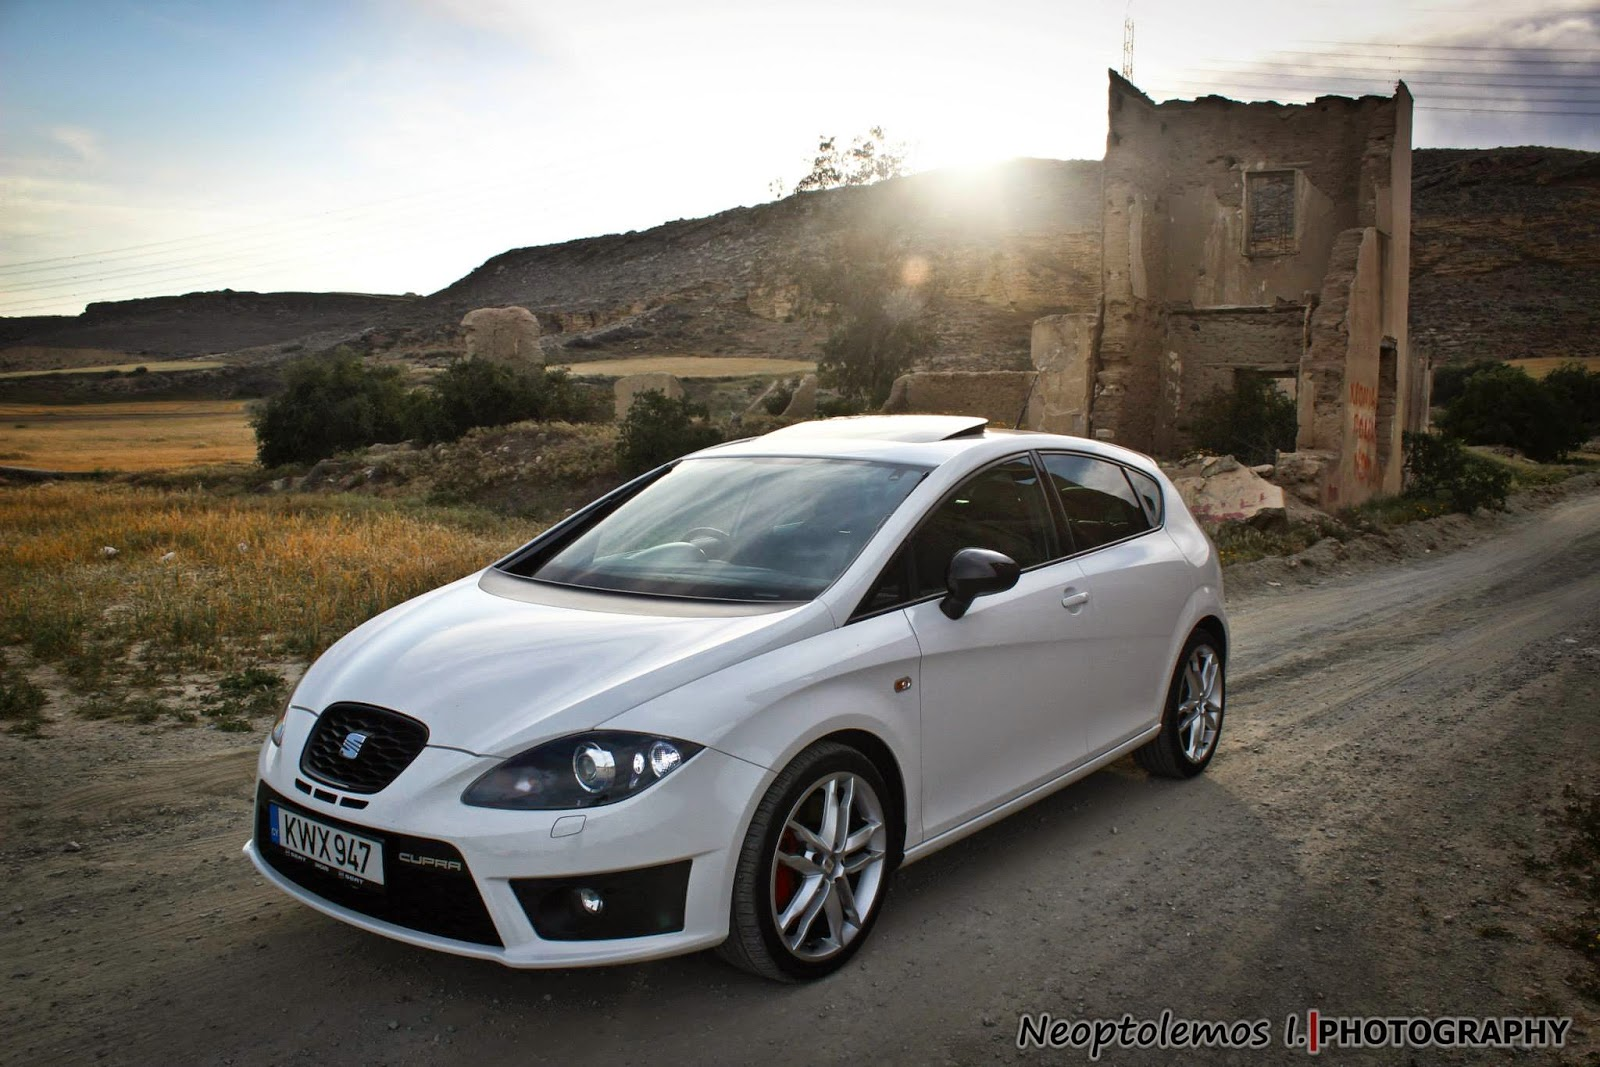 seat leon cupra mk2 1p facelift 2009 cyprus photos with my friend 39 s seats. Black Bedroom Furniture Sets. Home Design Ideas